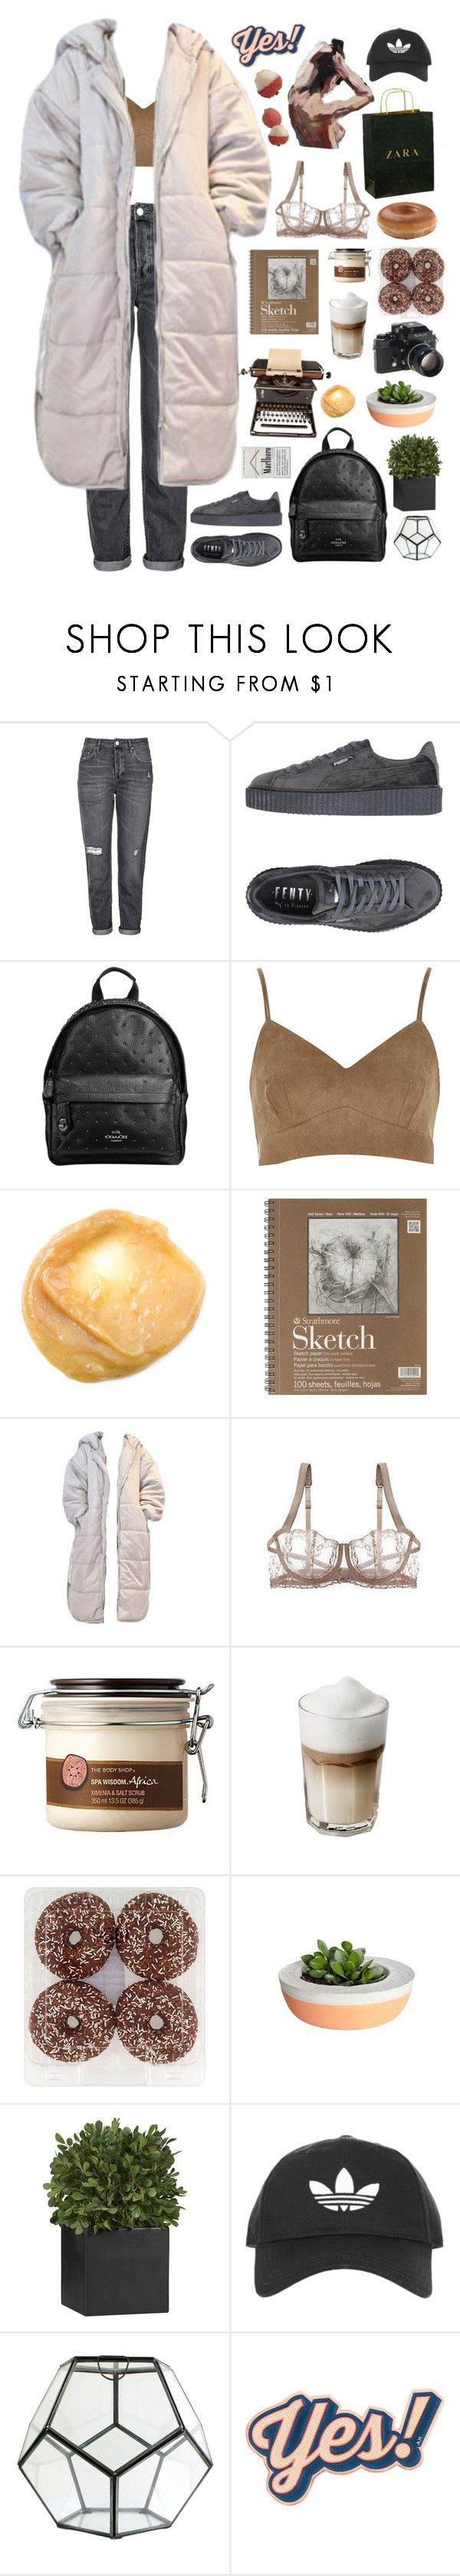 """8:14 pm"" by jmperez2061 ❤ liked on Polyvore featuring Topshop, Puma, Coach, Fleur of England, The Body Shop, Zara, Nikon, Crate and Barrel, HomArt and Anya Hindmarch"